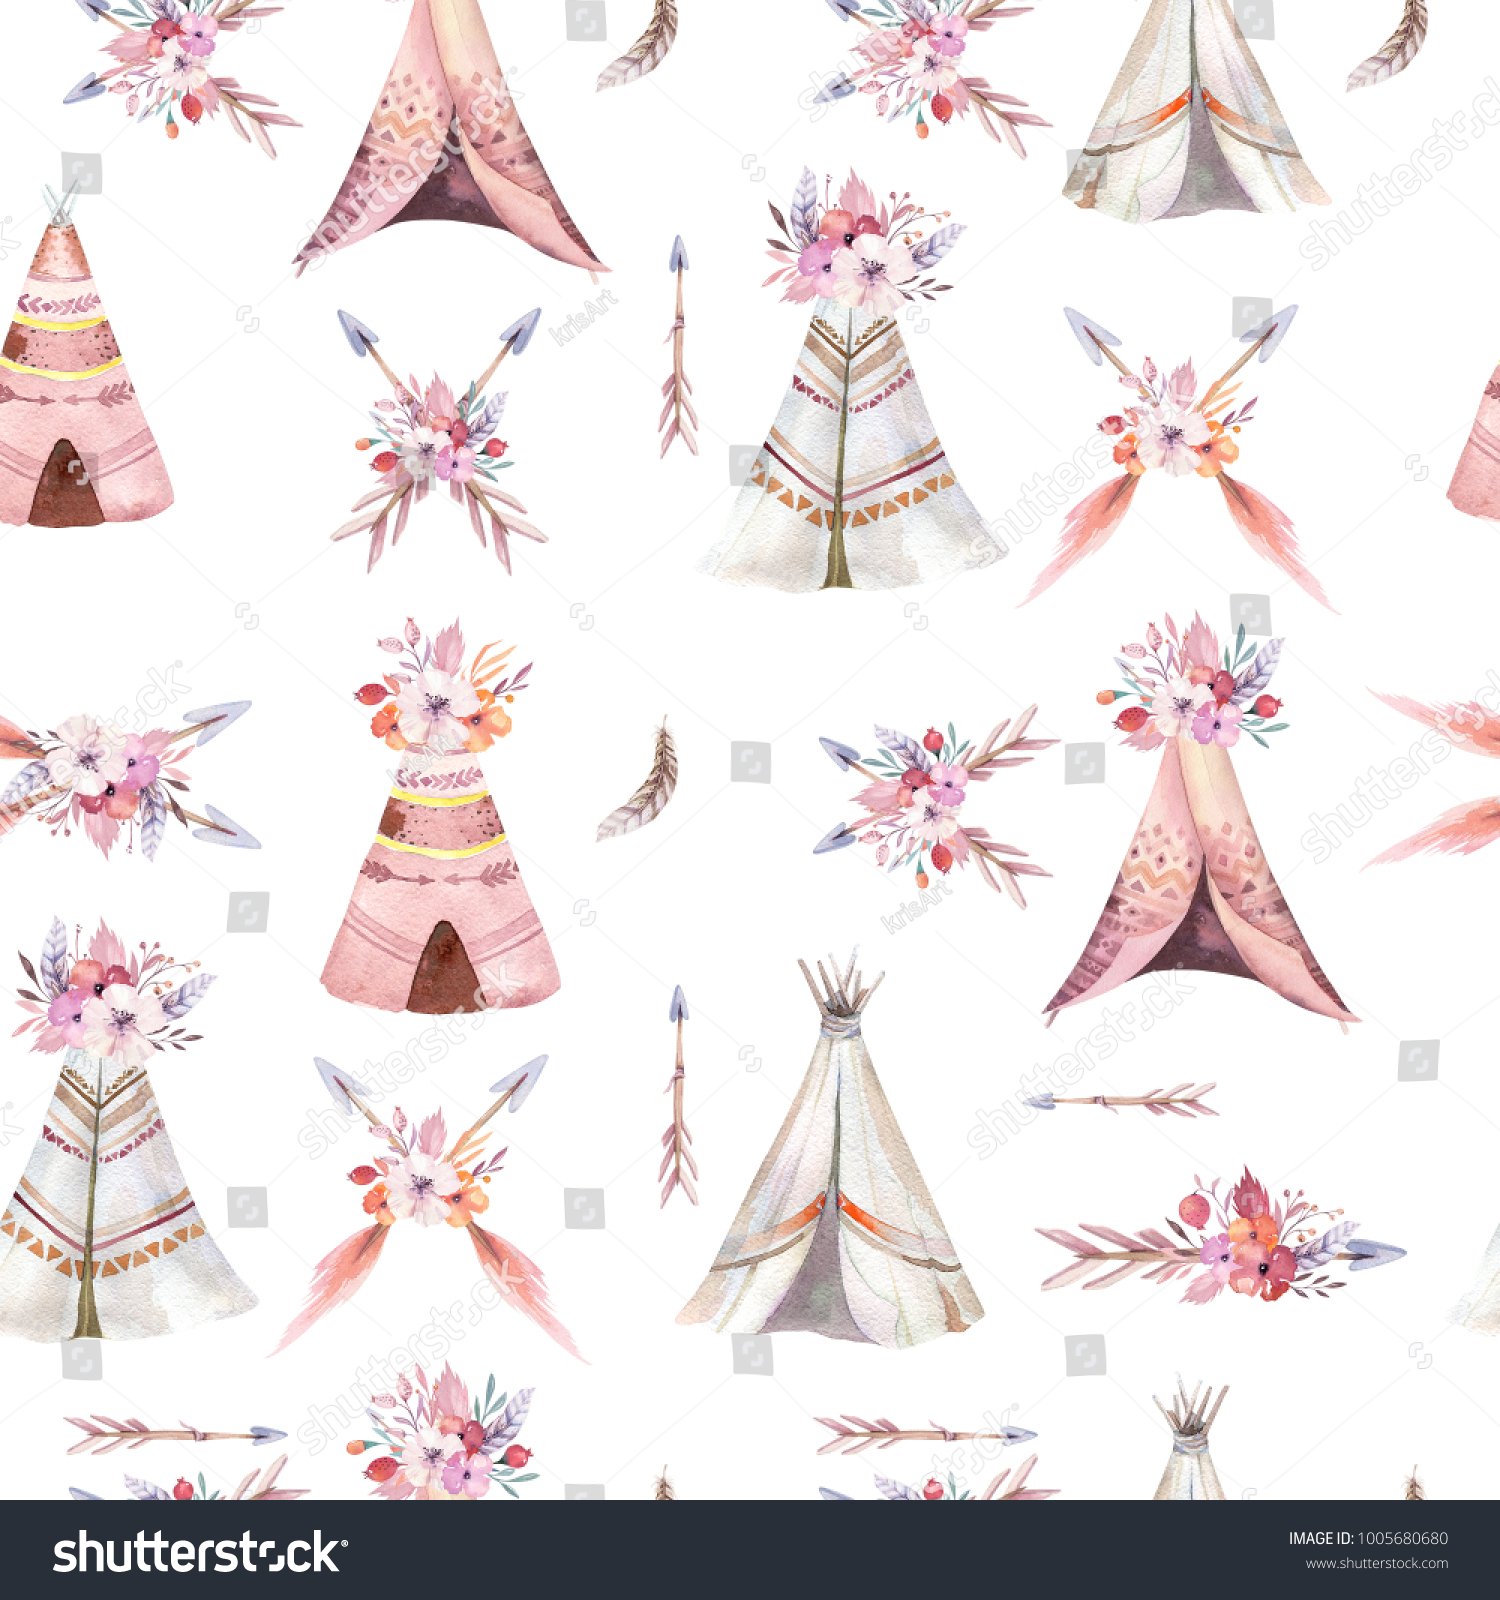 Charming Teepee Template Gallery